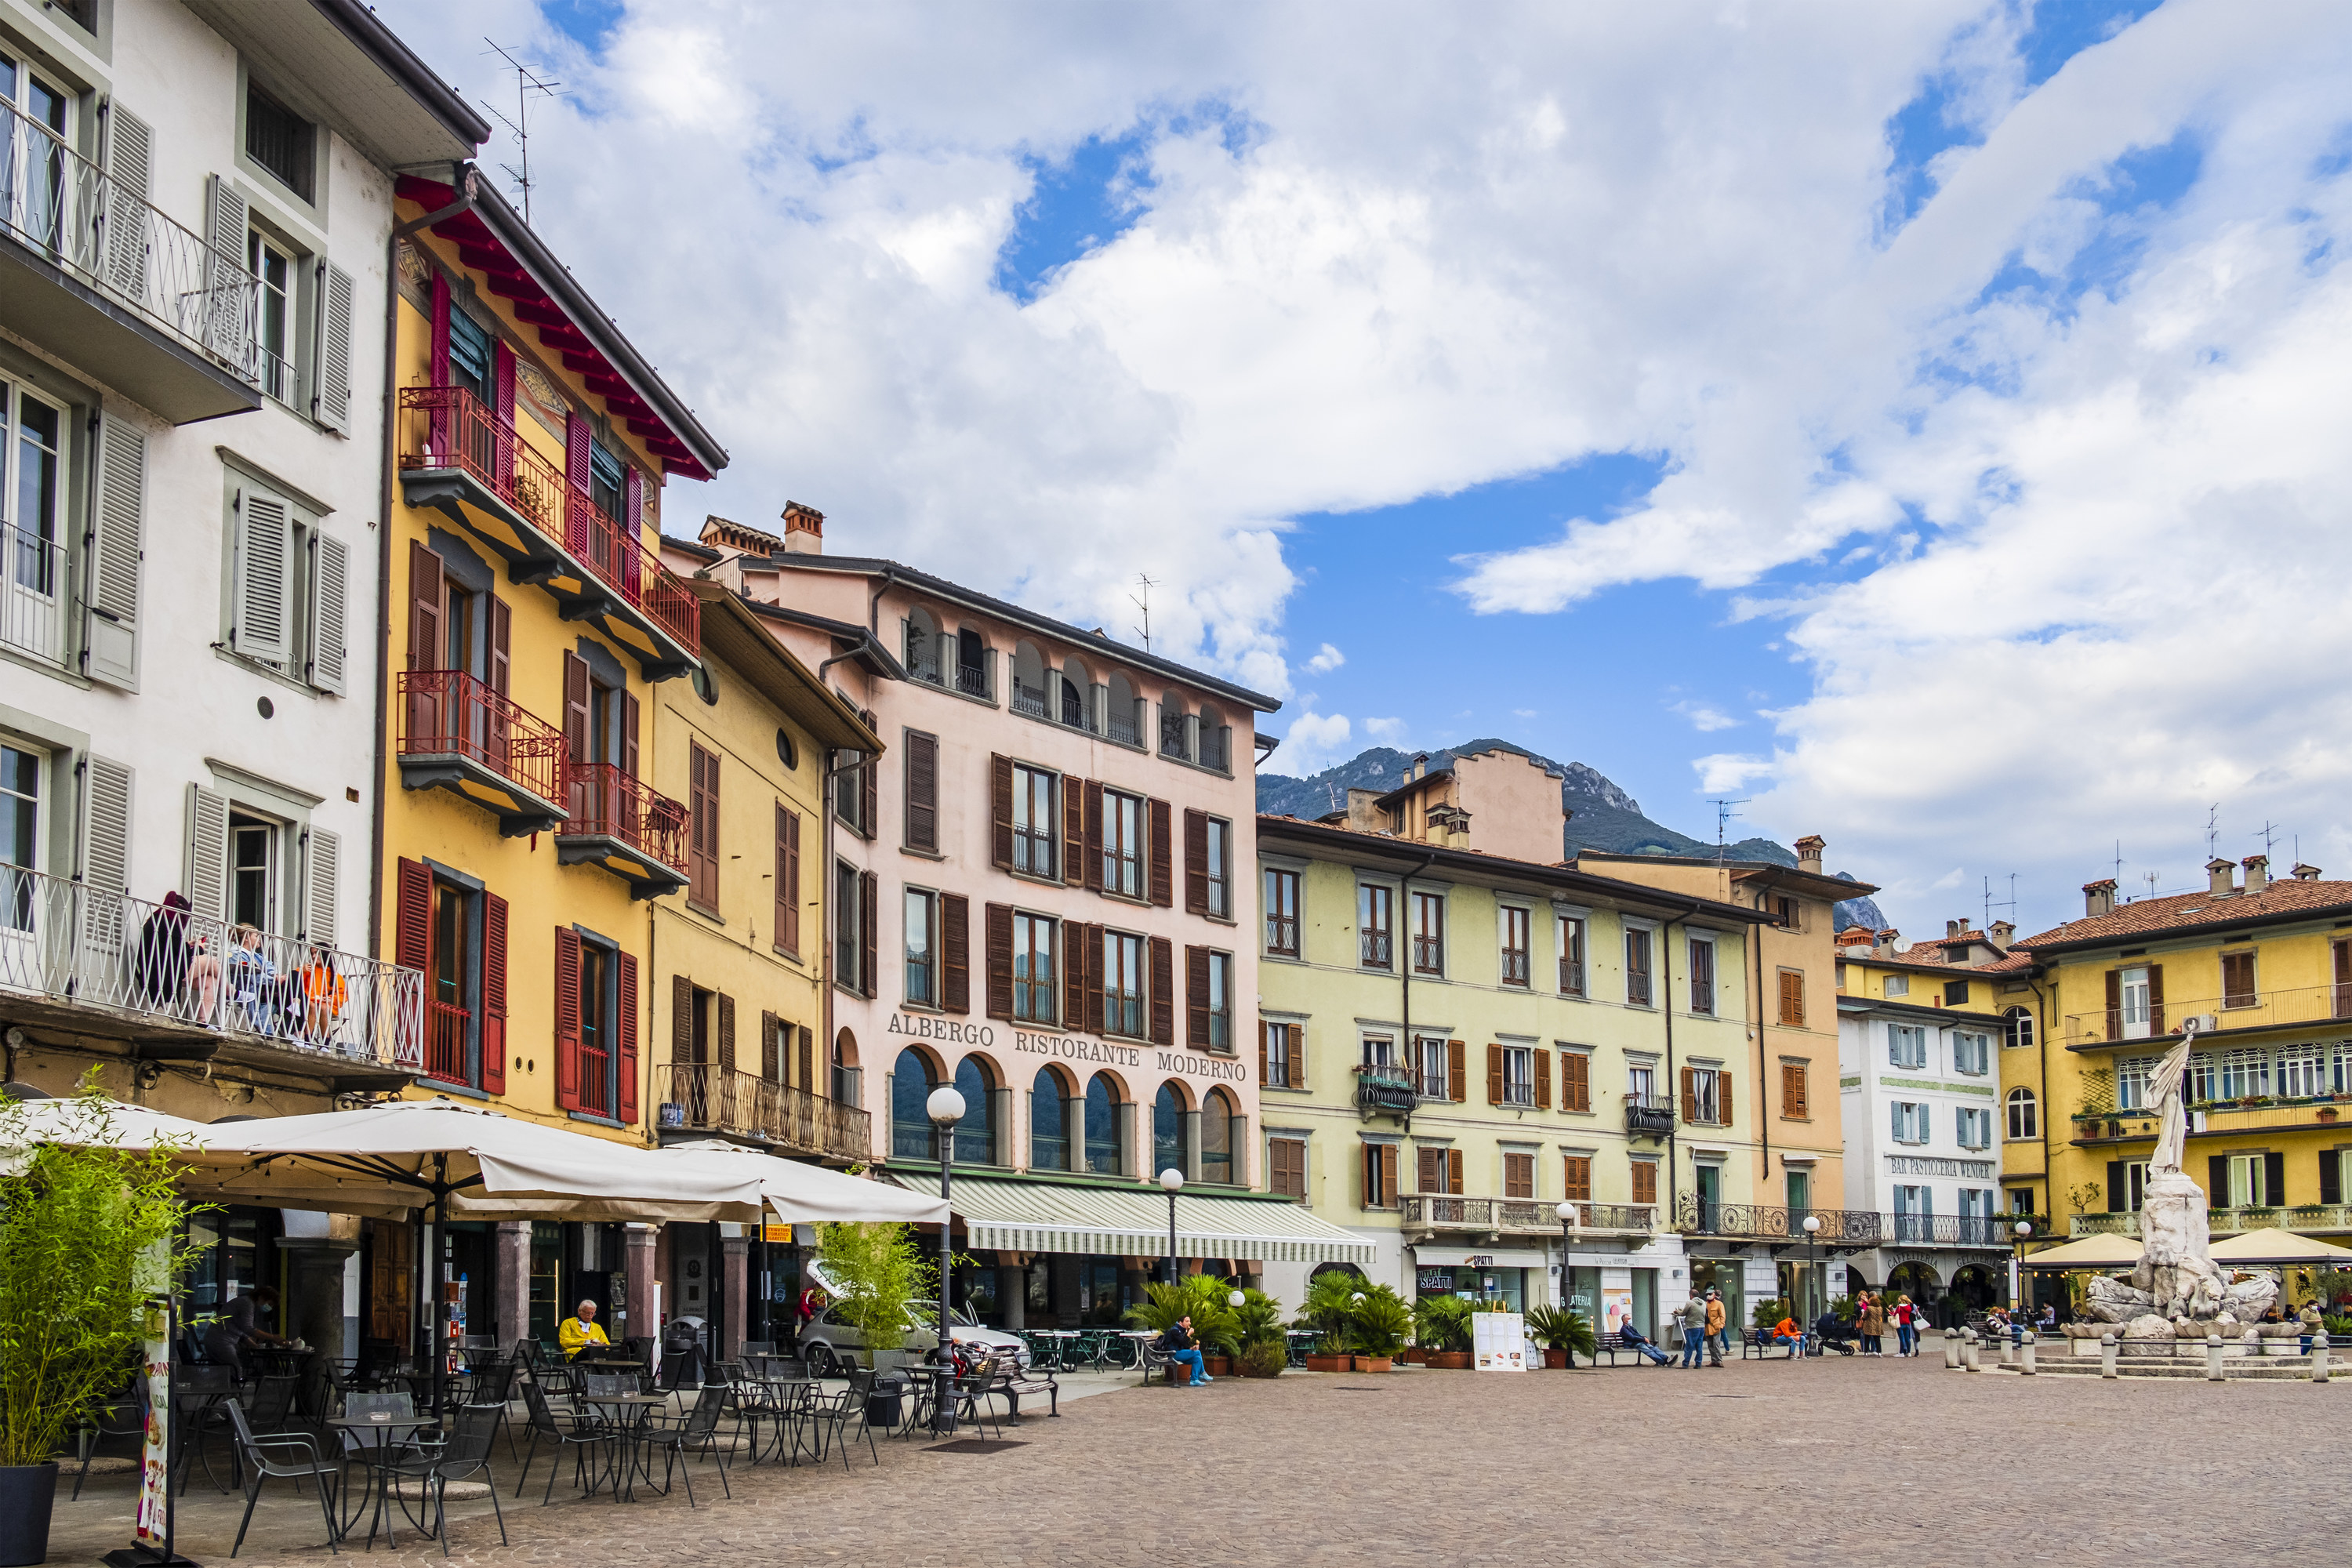 A quiet square in Italy.